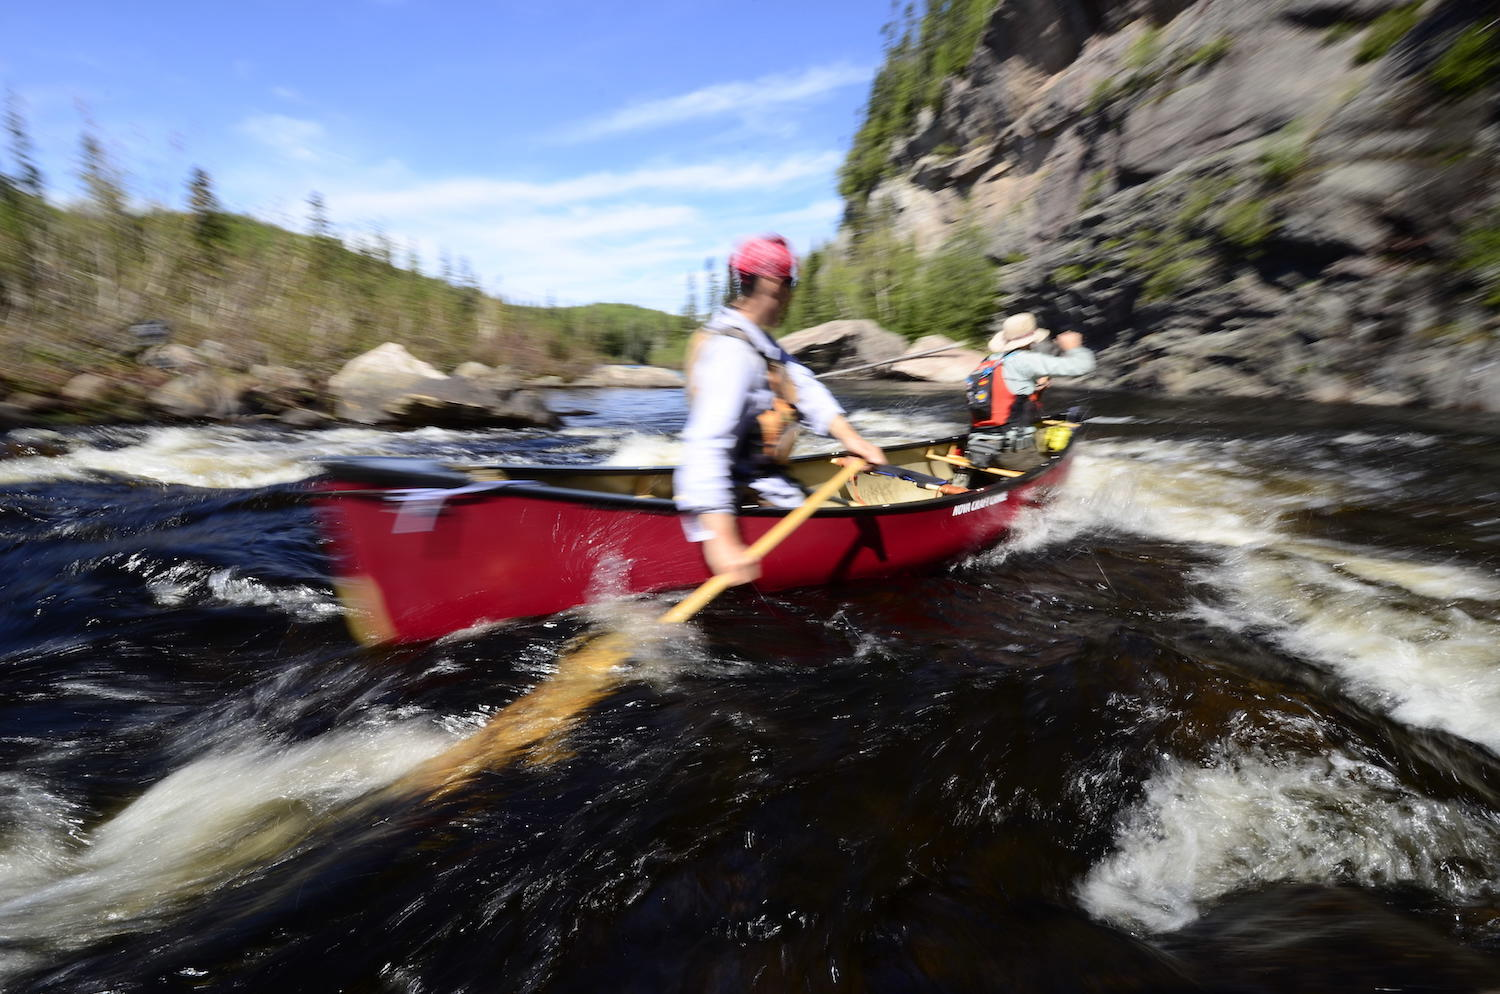 two paddlers in red canoe in whitewater